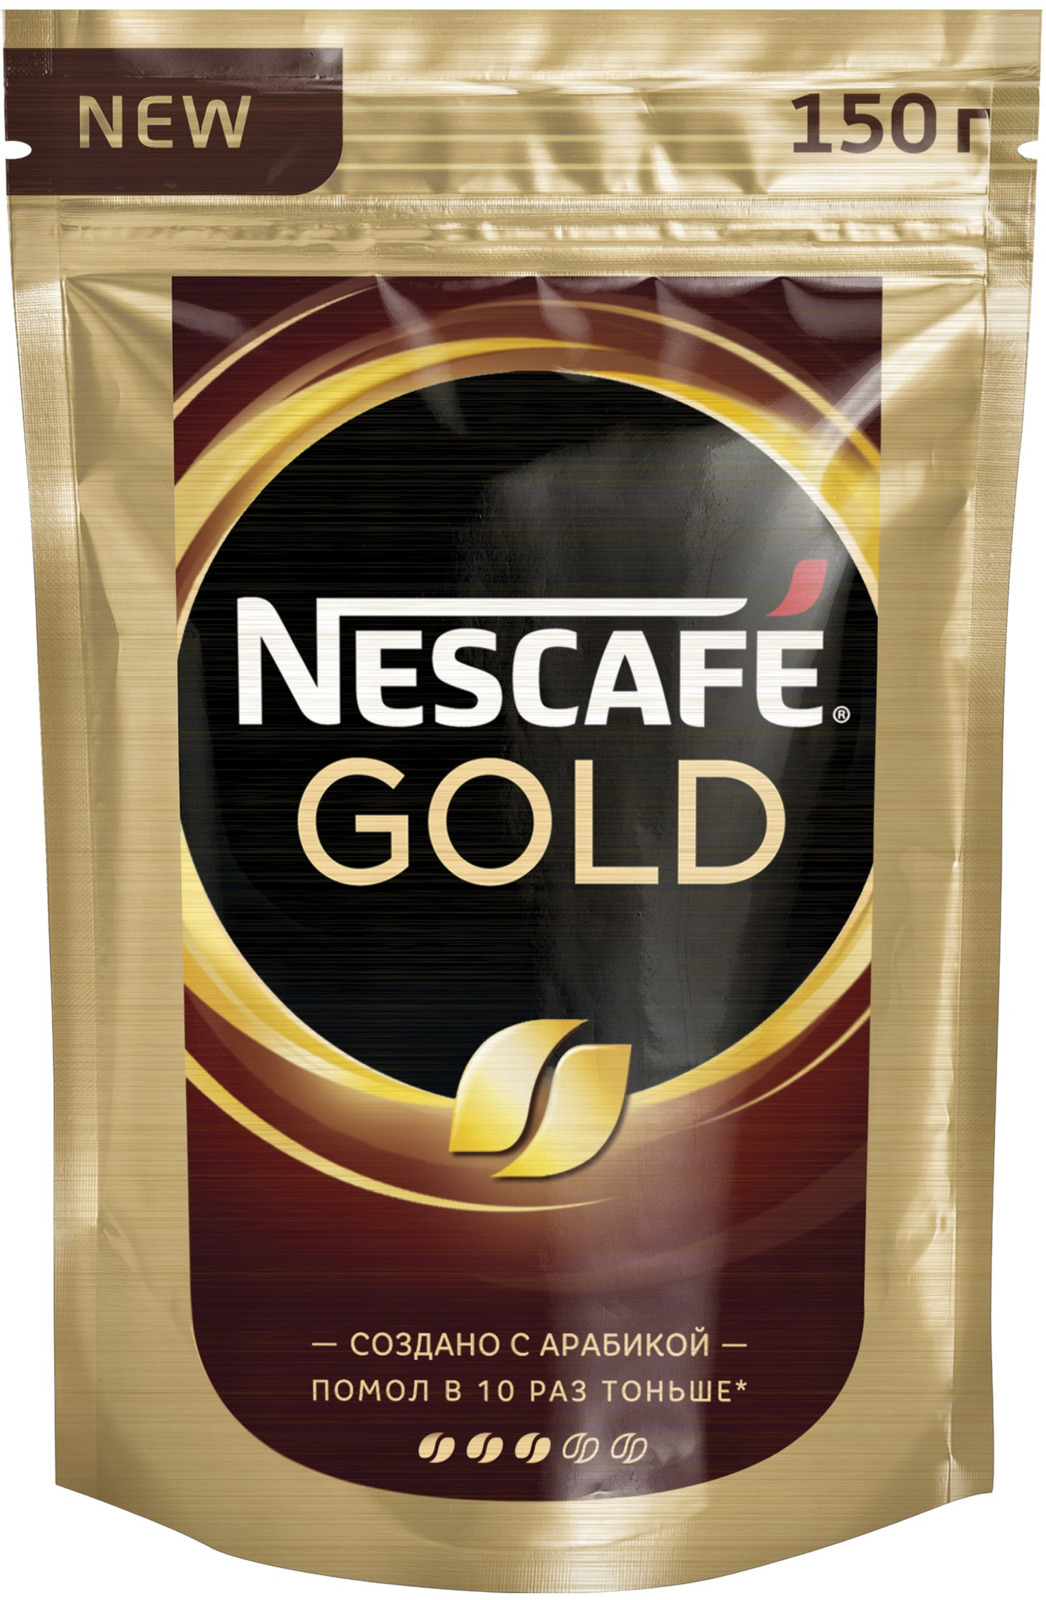 Nescafe Gold Кофе растворимый сублимированный с добавлением натурального жареного молотого кофе, 150 г